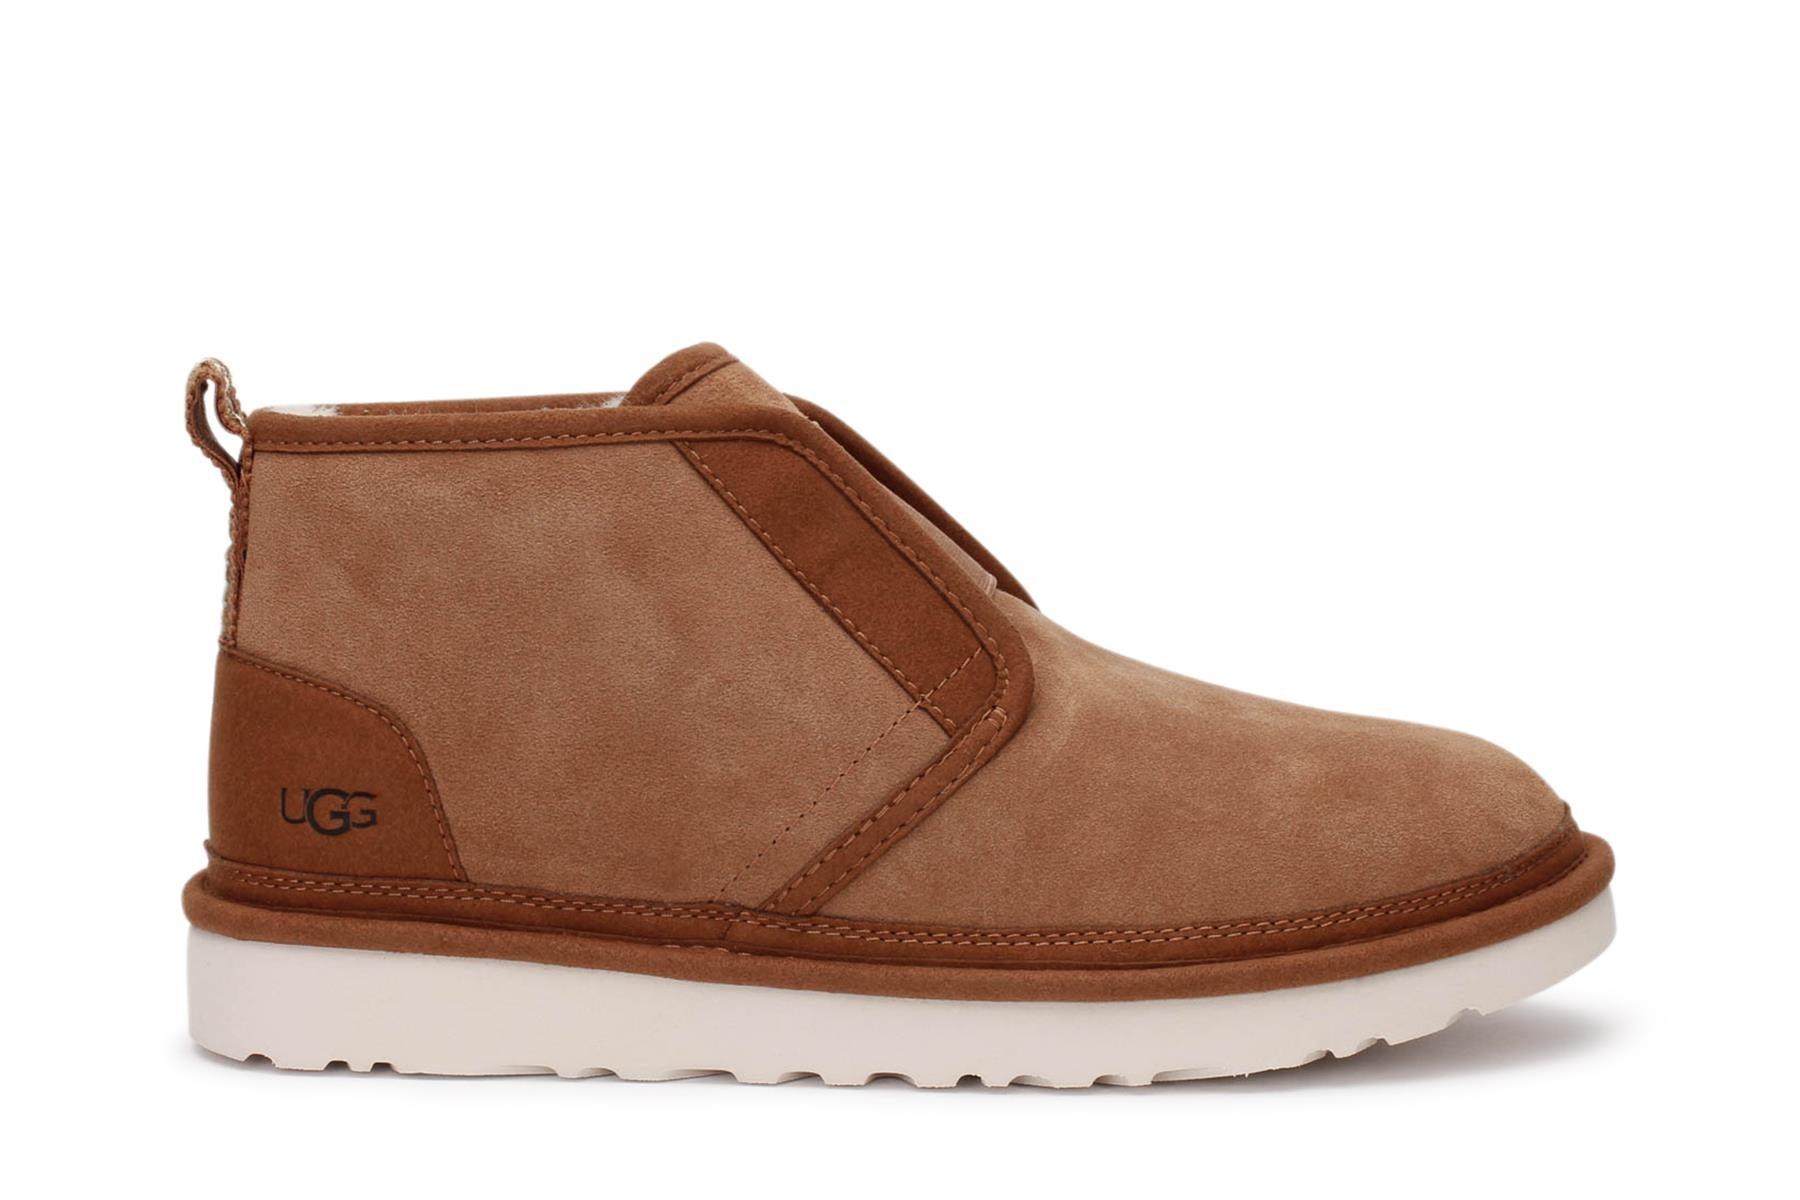 ugg-mens-winter-boots-neumel-flex-chestnut-main